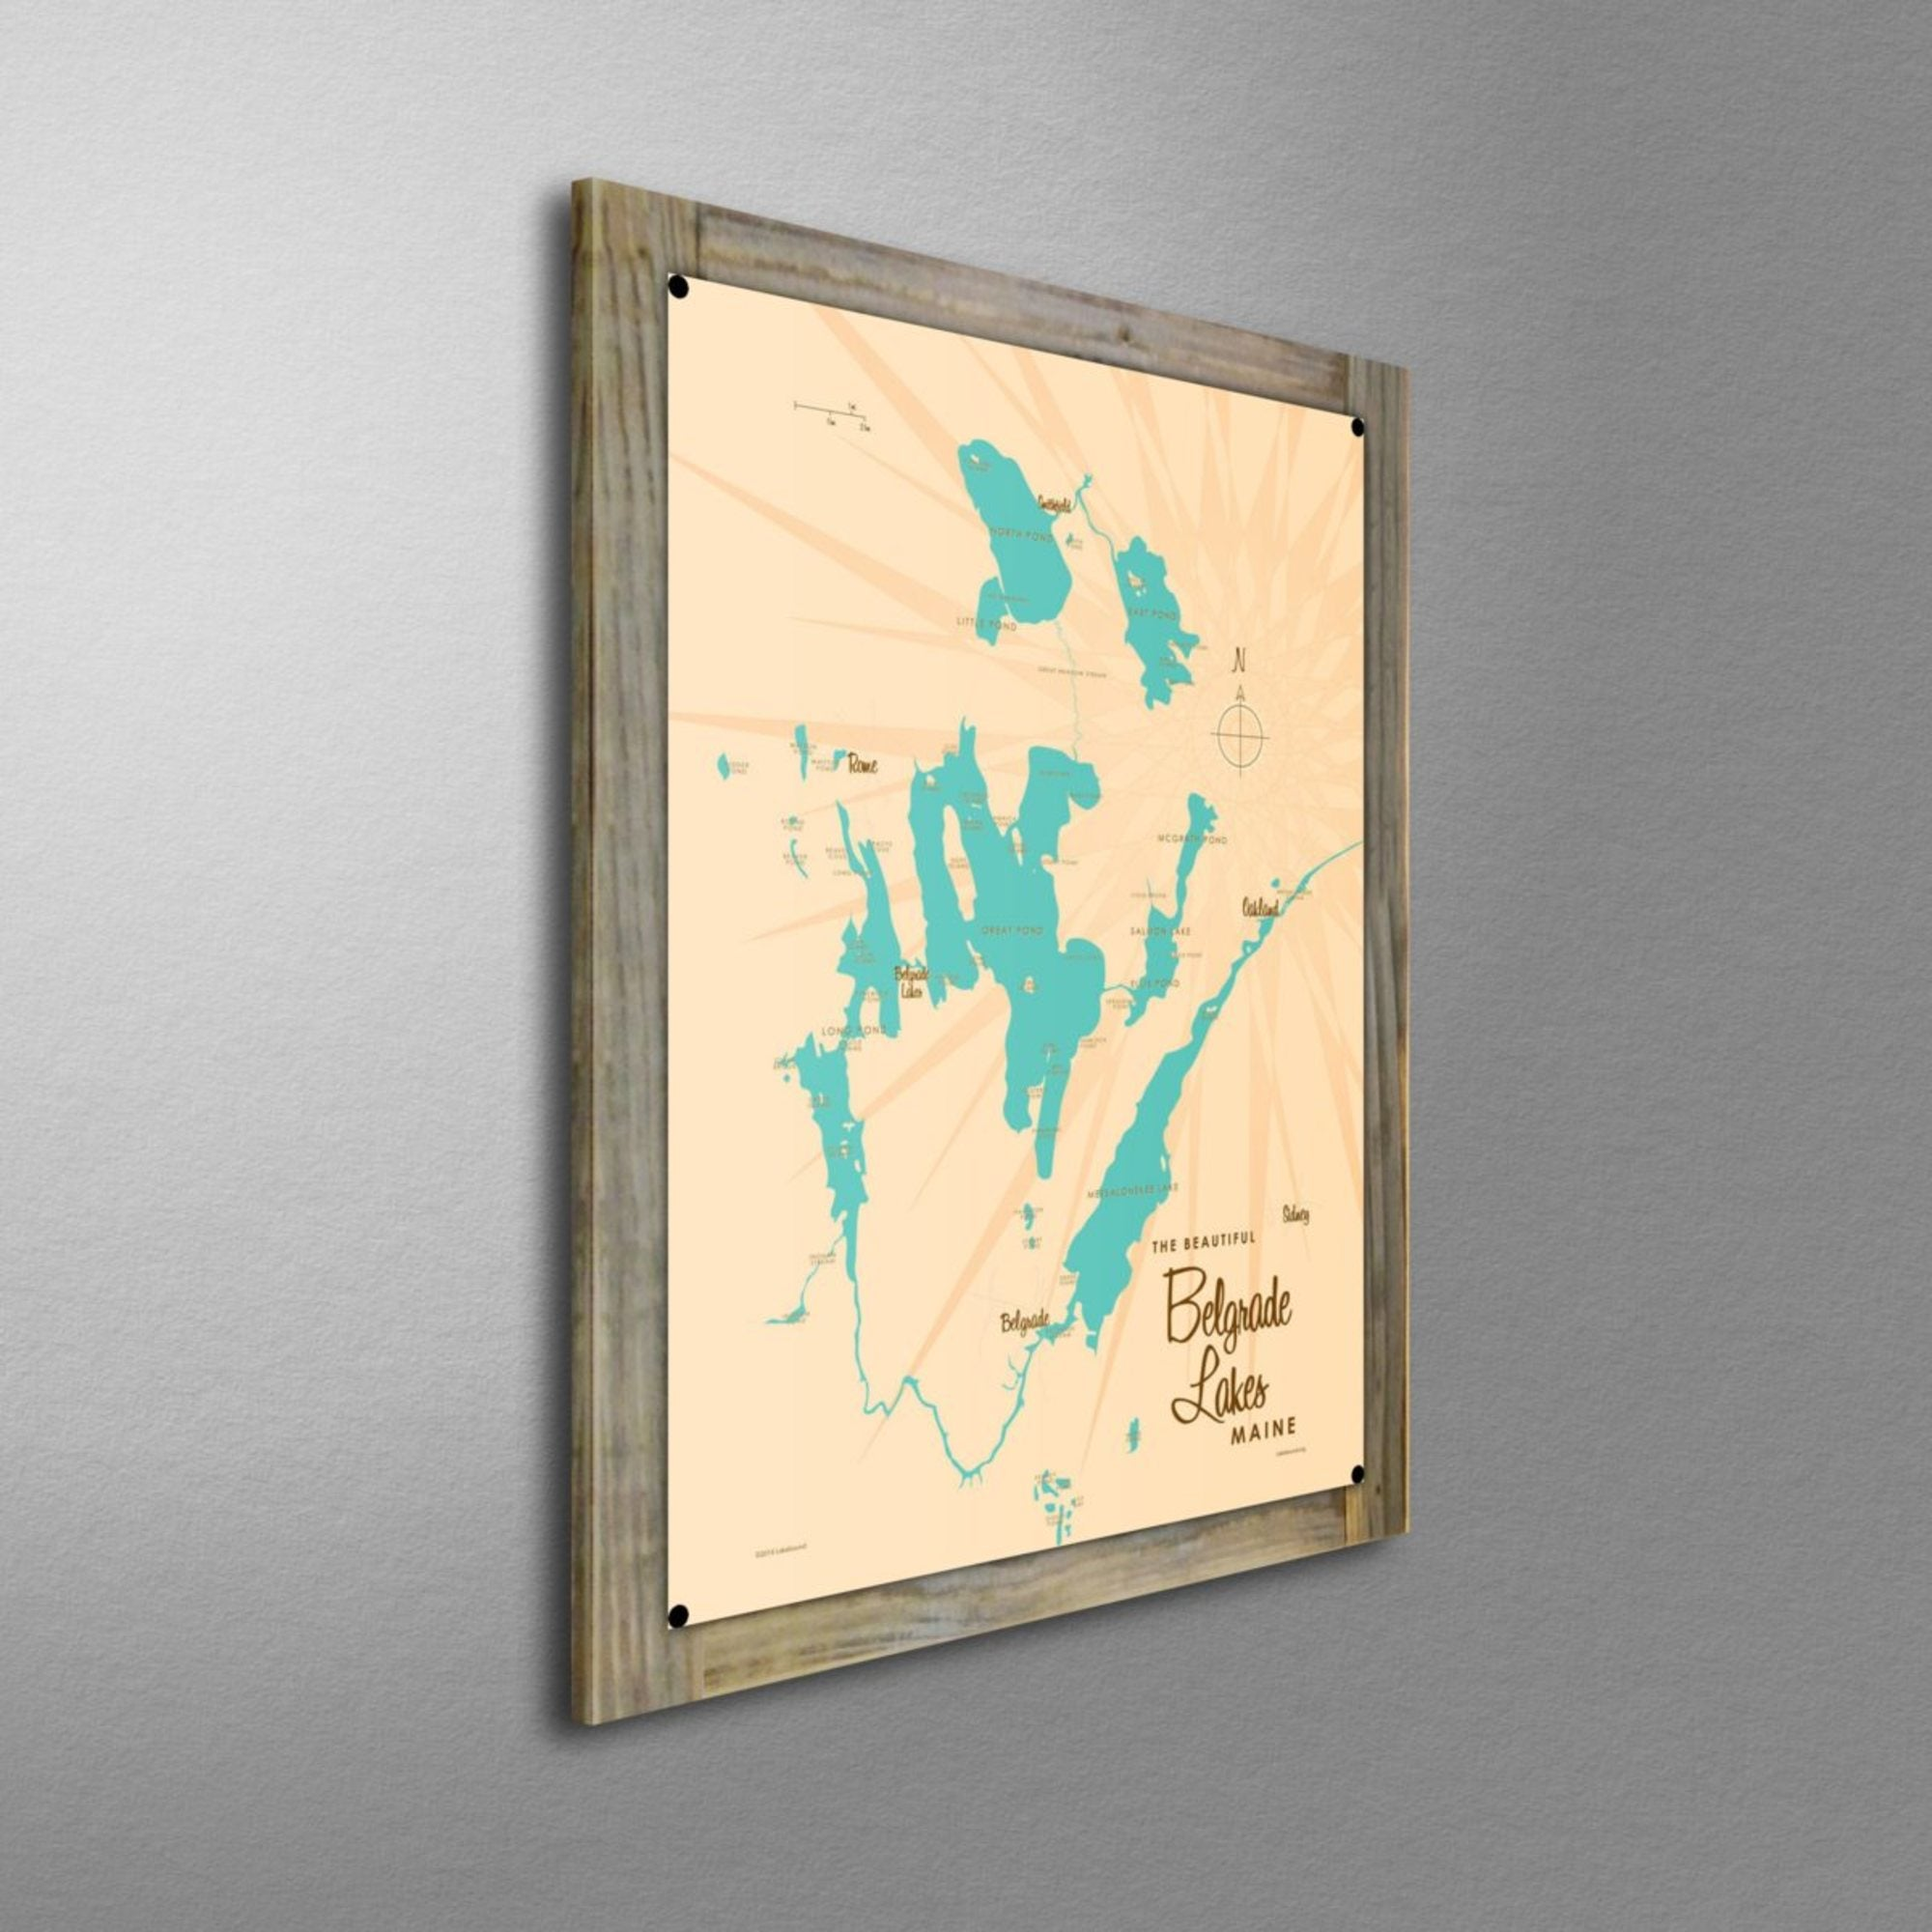 Belgrade Lakes Maine, Wood-Mounted Metal Sign Map Art